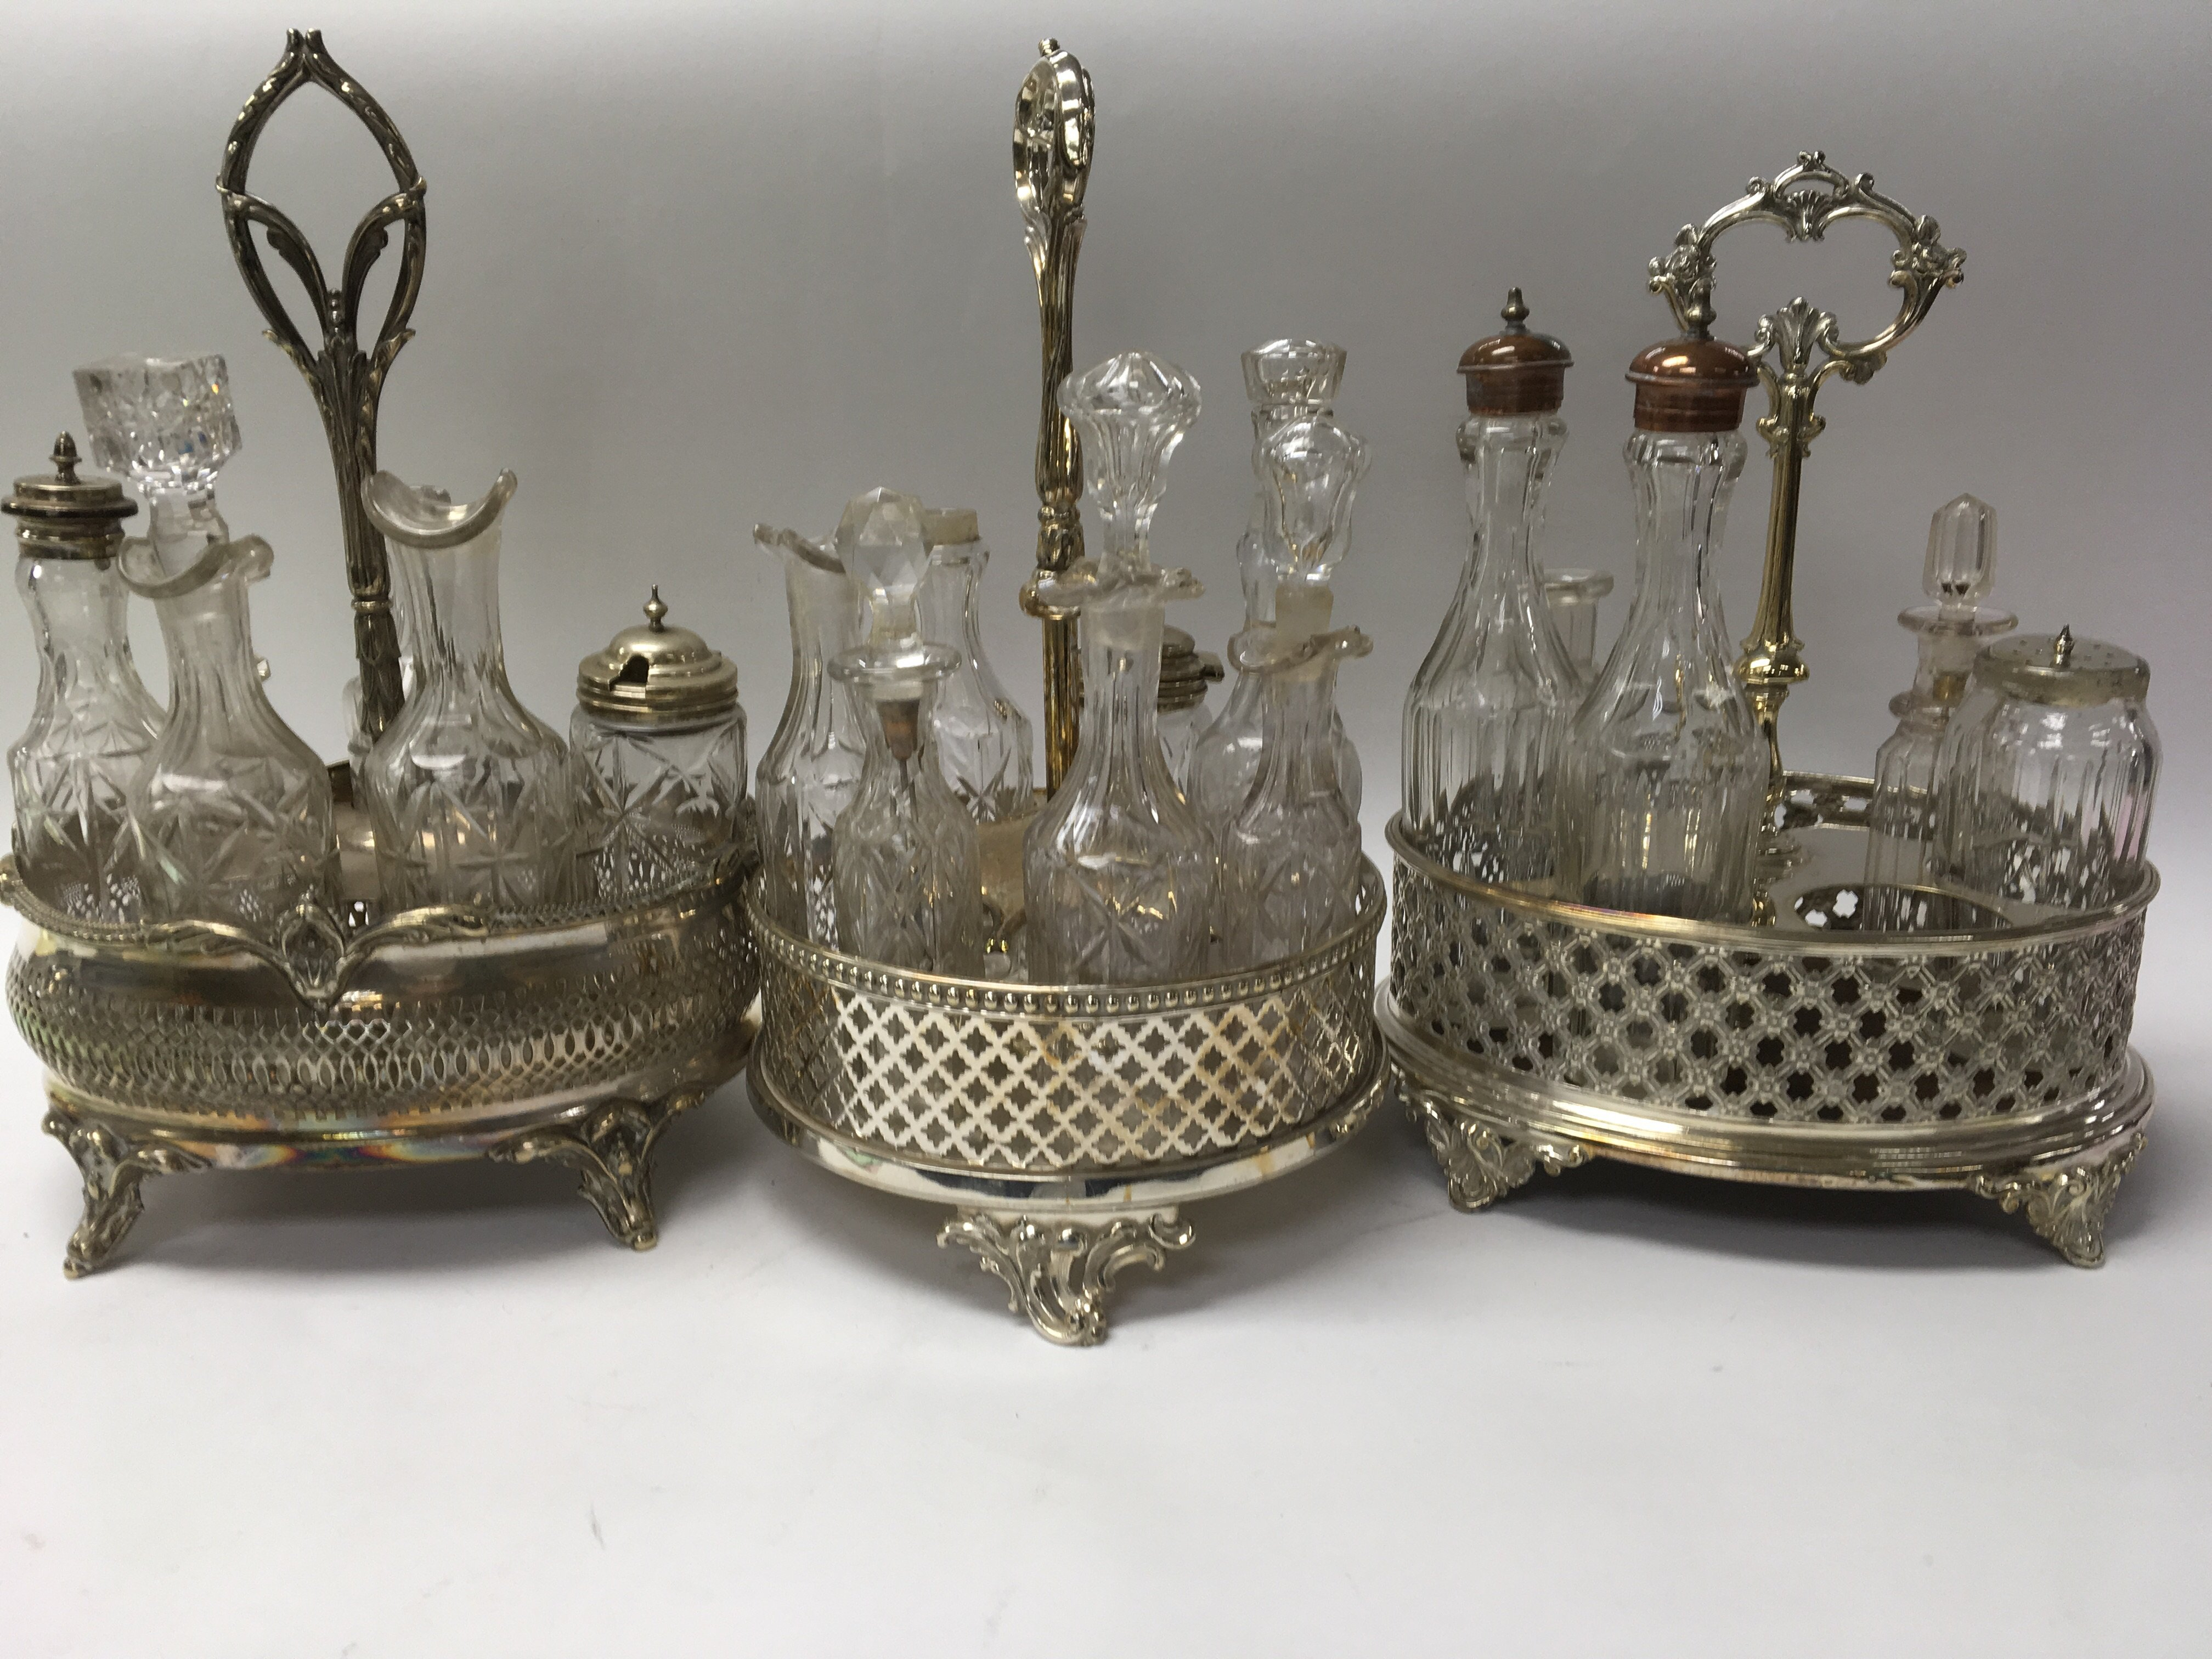 Lot 247 - Three silver plated cruet stands inset with bottle